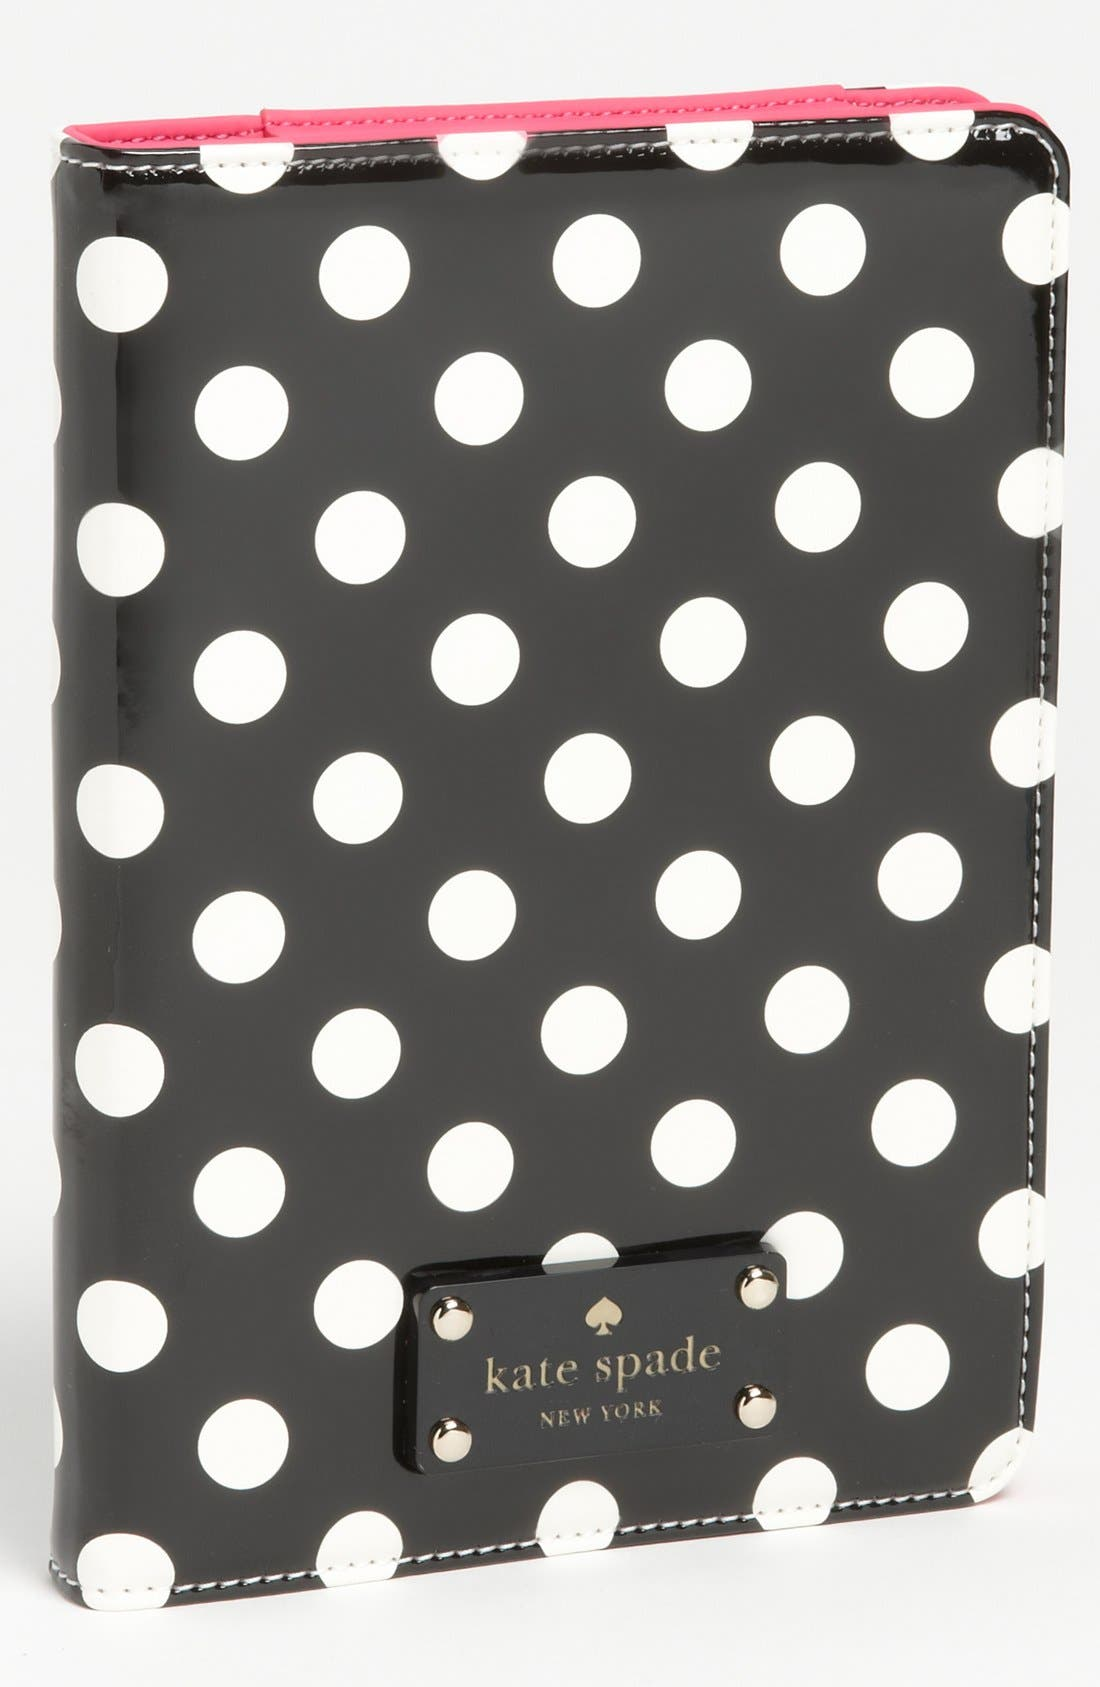 Main Image - kate spade new york 'le pavillion' iPad mini folio